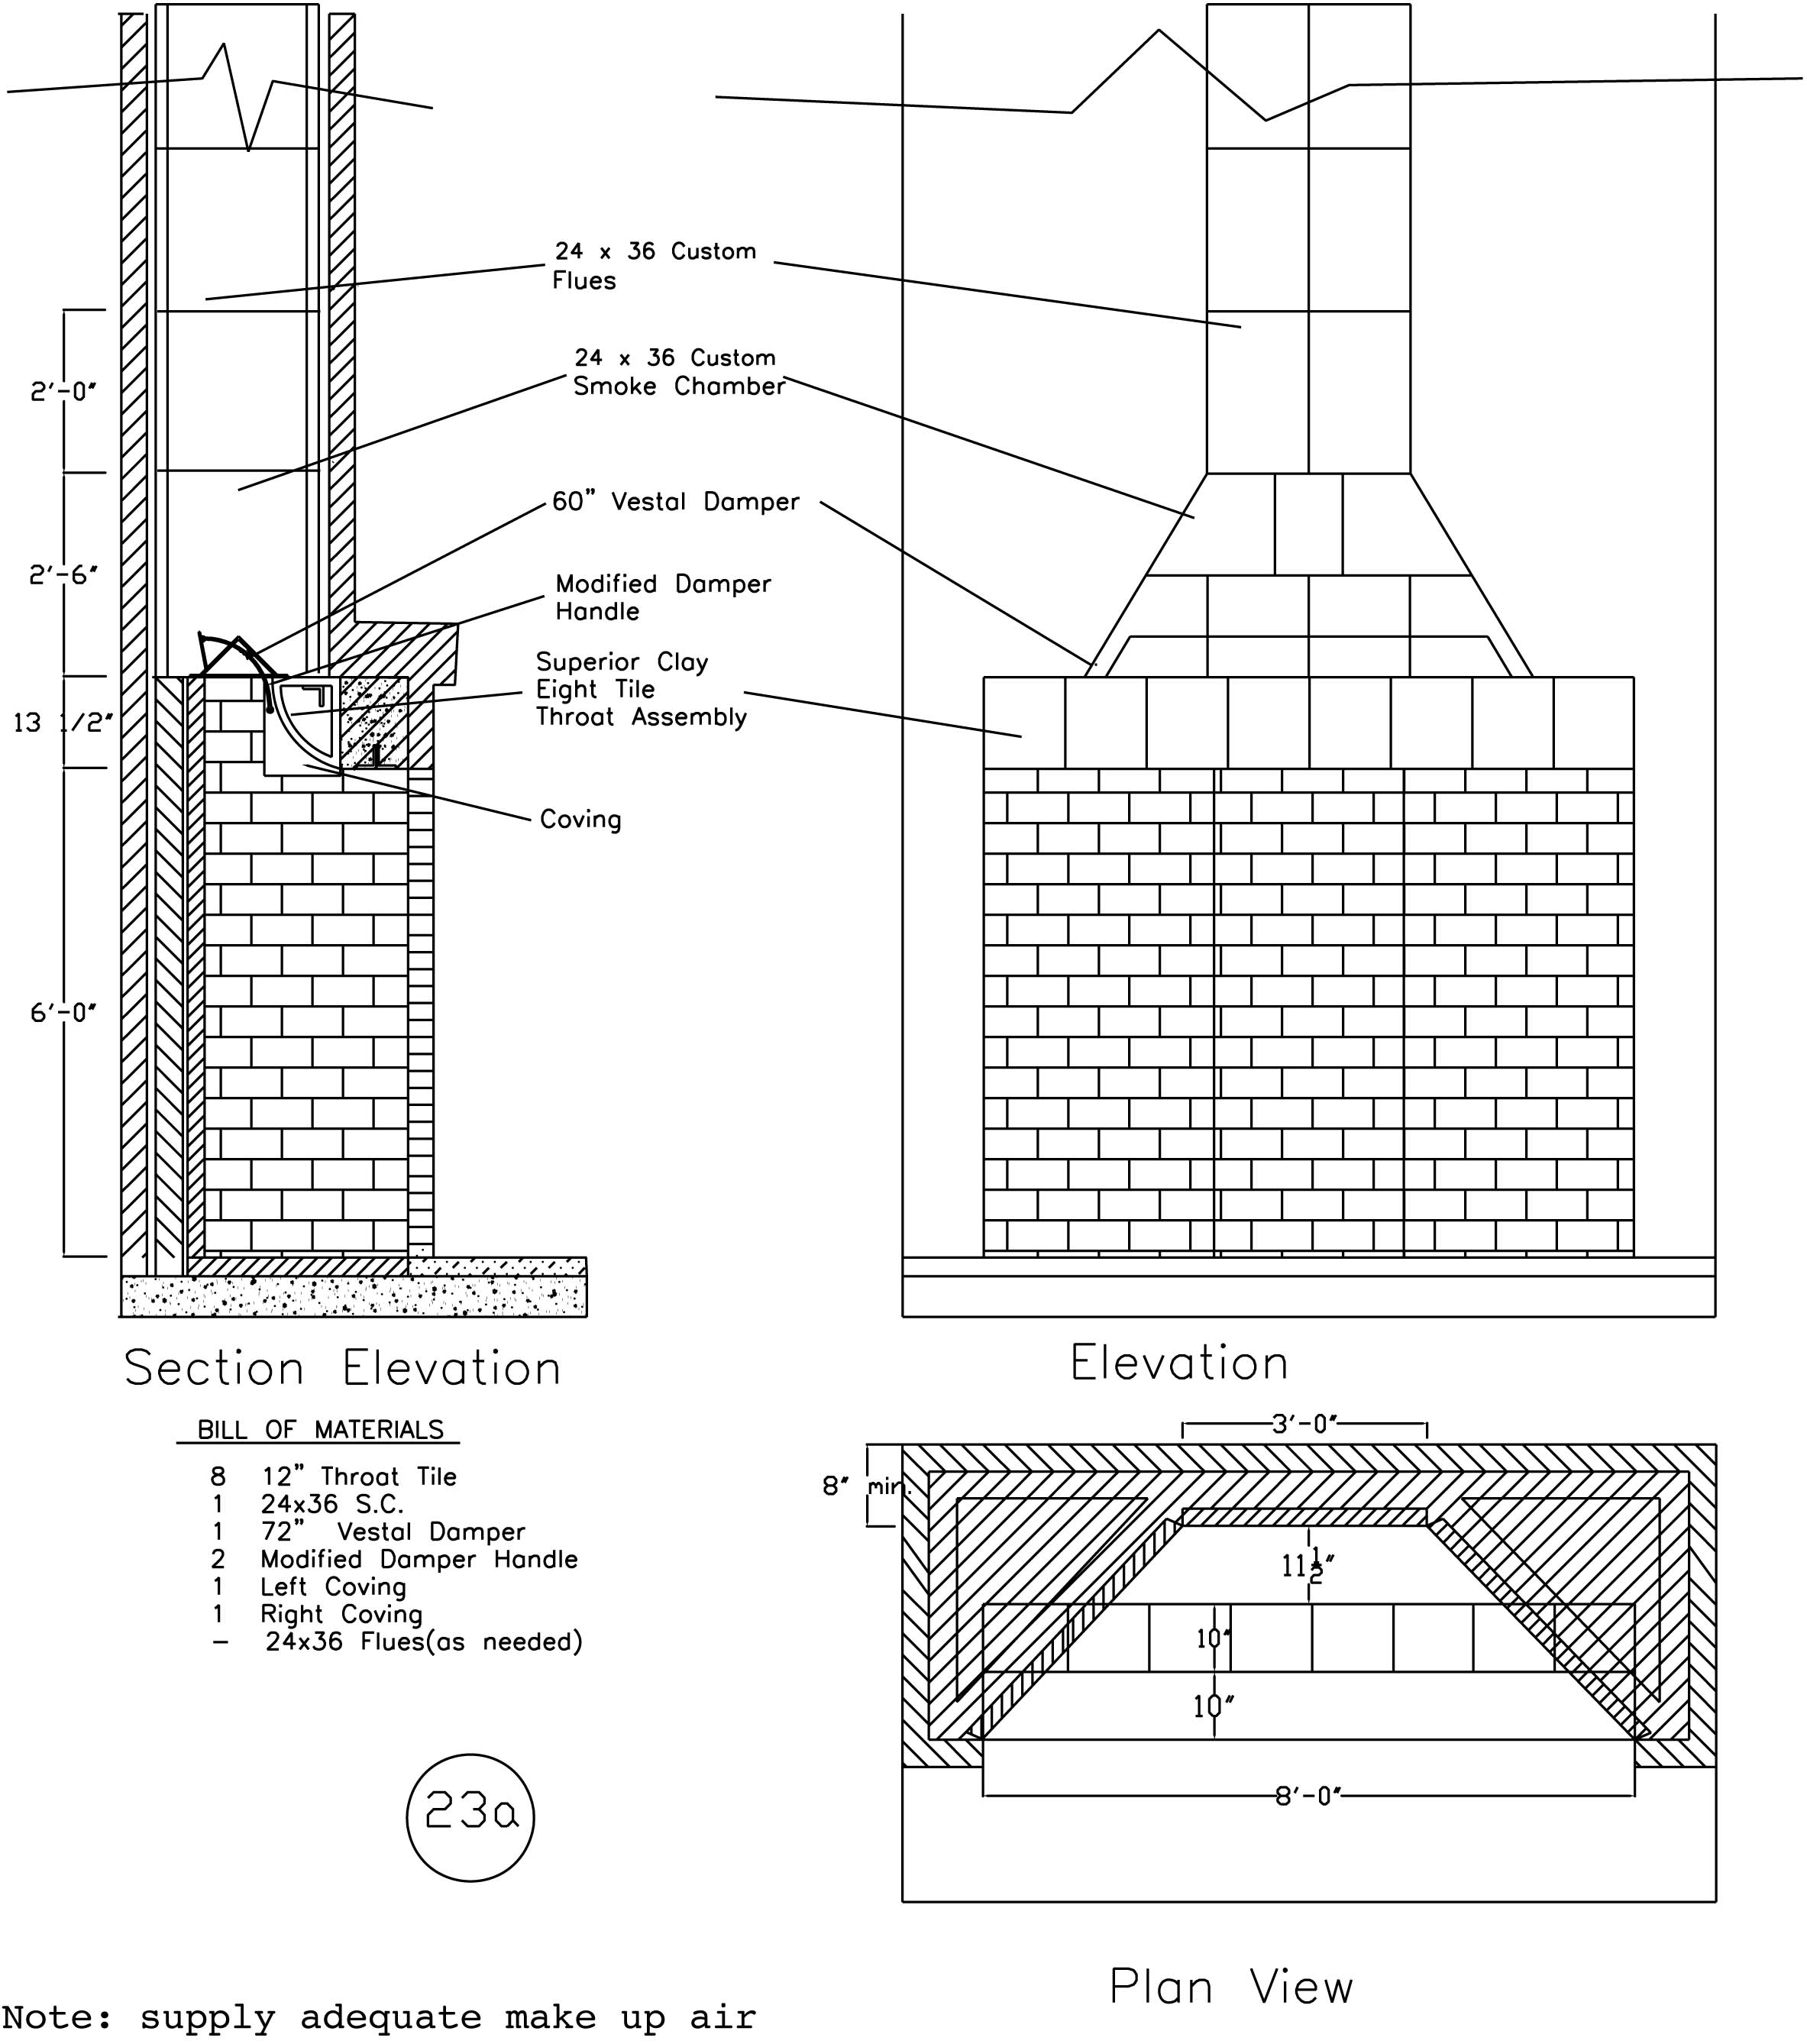 Rumford Fireplace Plans Instructions: fireplace plans